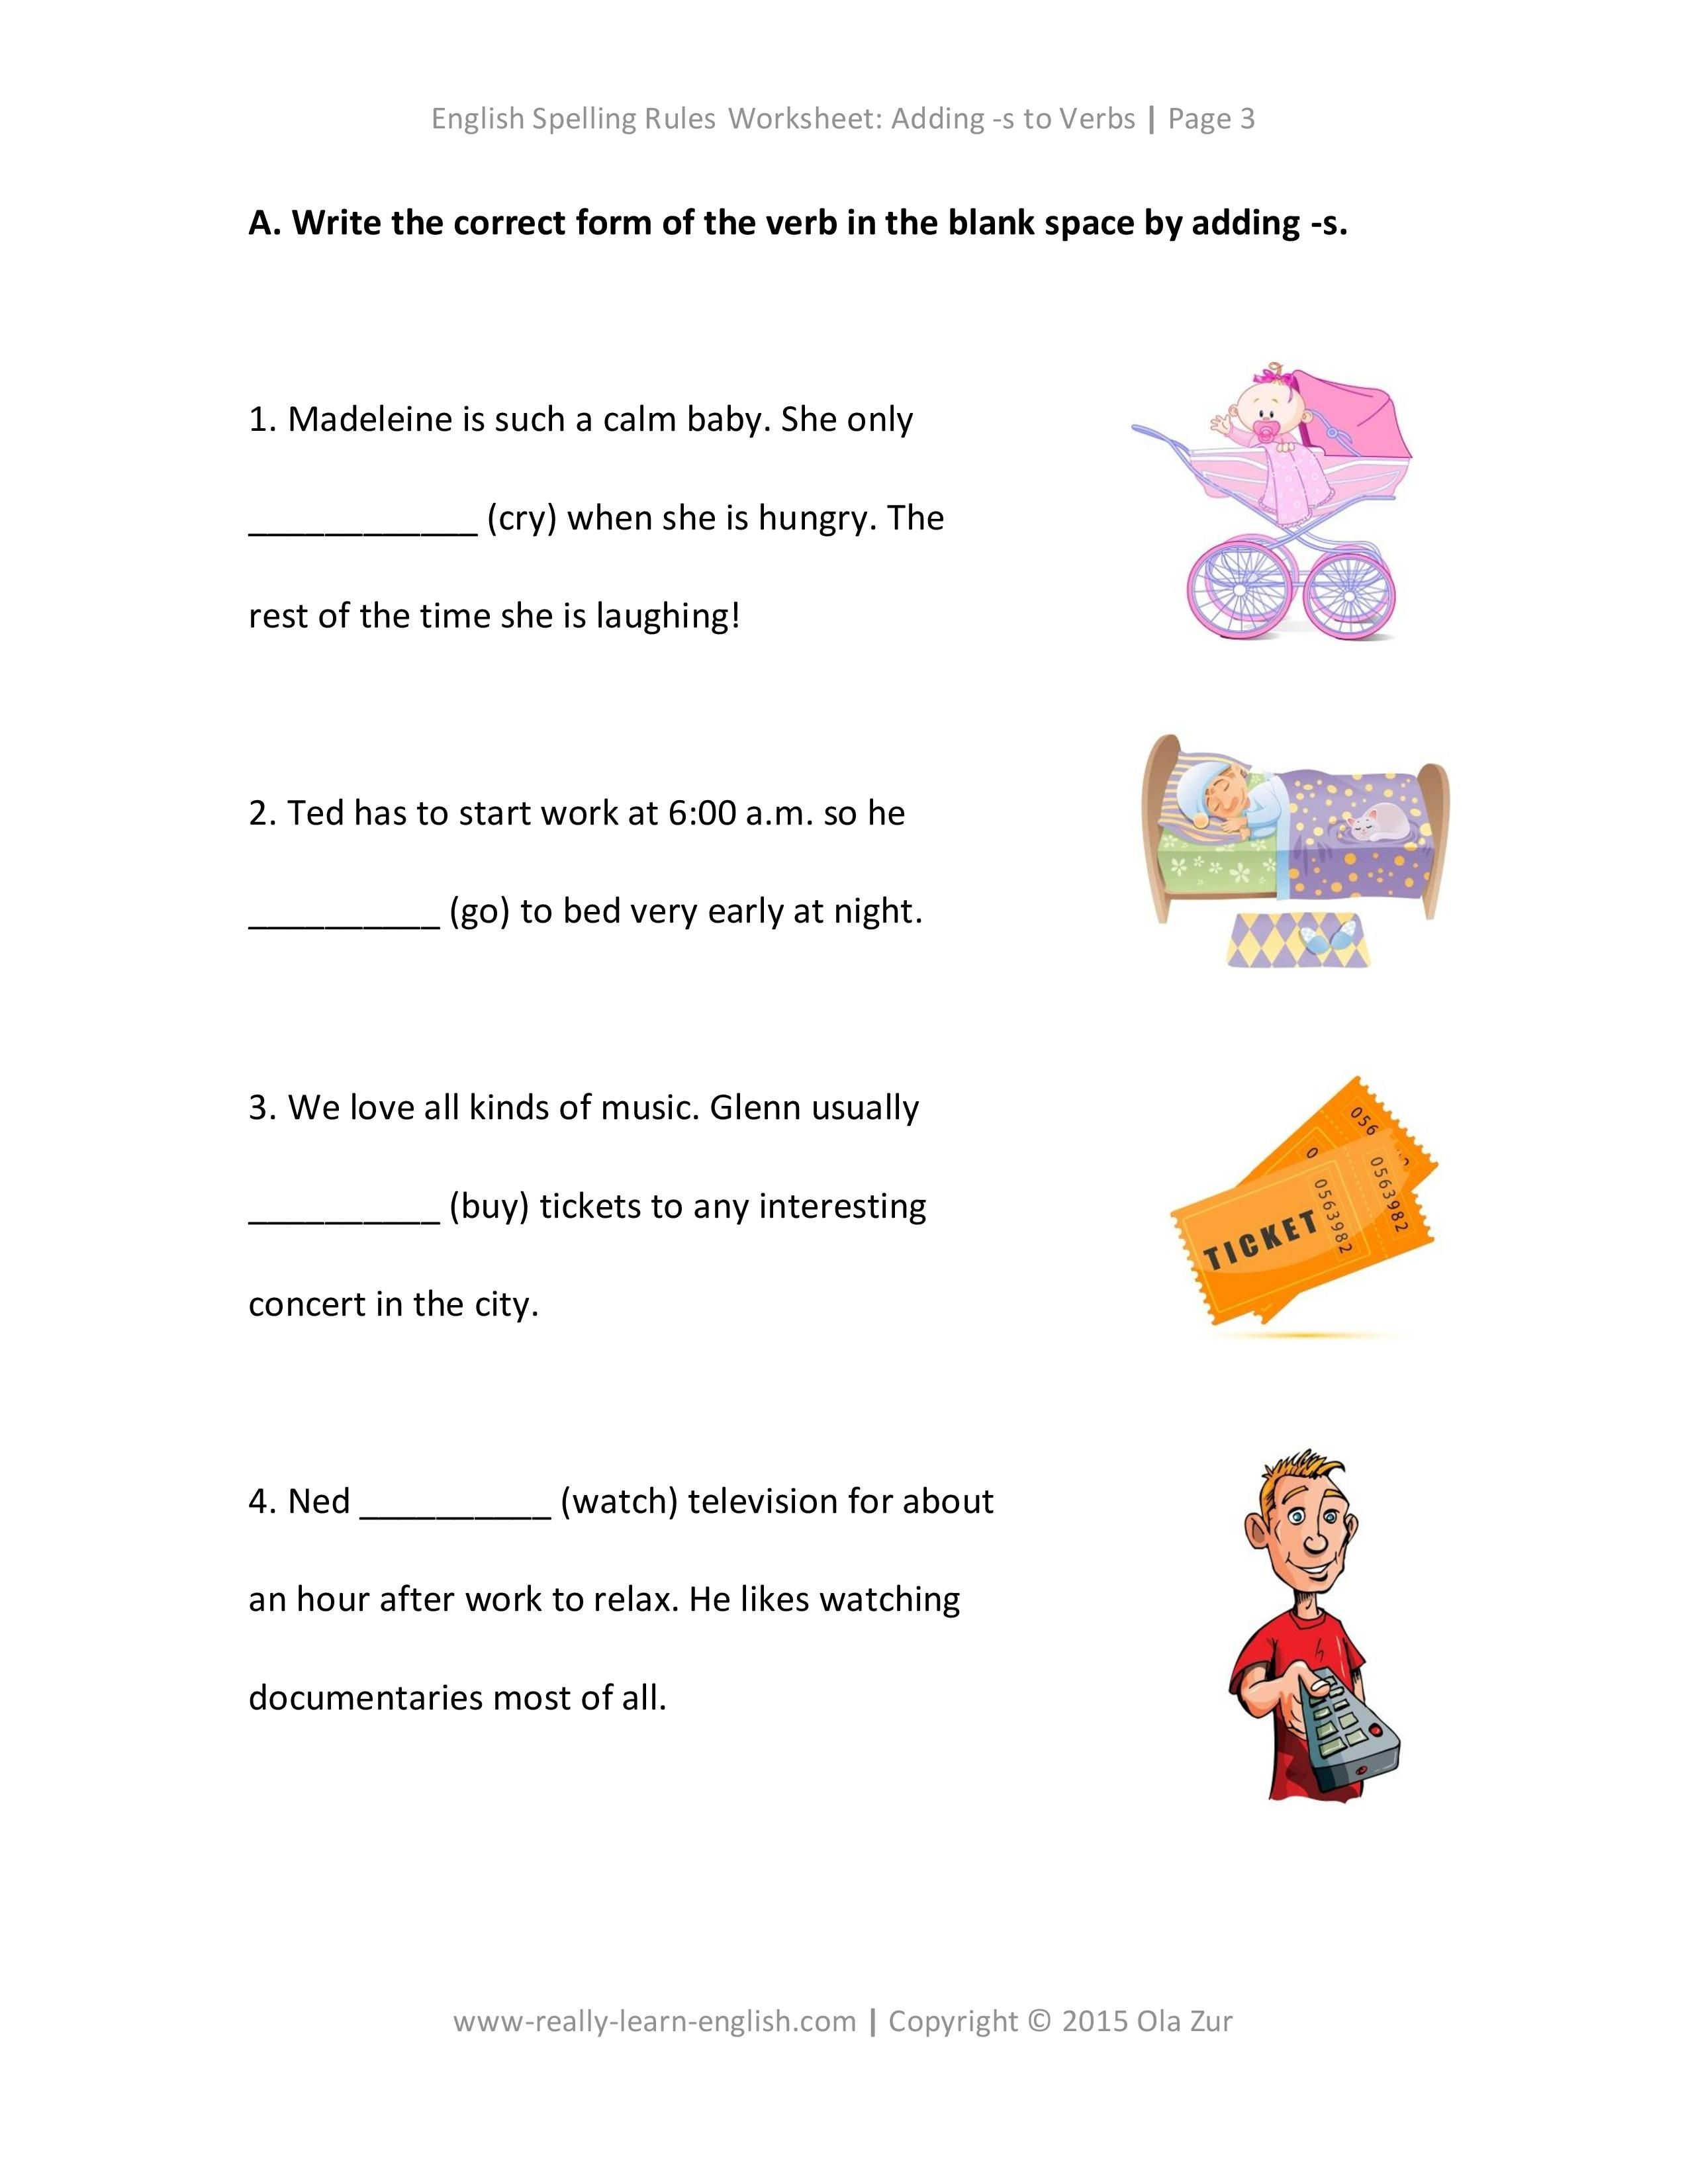 Spelling Rules How To Add S To A Verb Spelling Rules English Spelling Rules Learn English Vocabulary